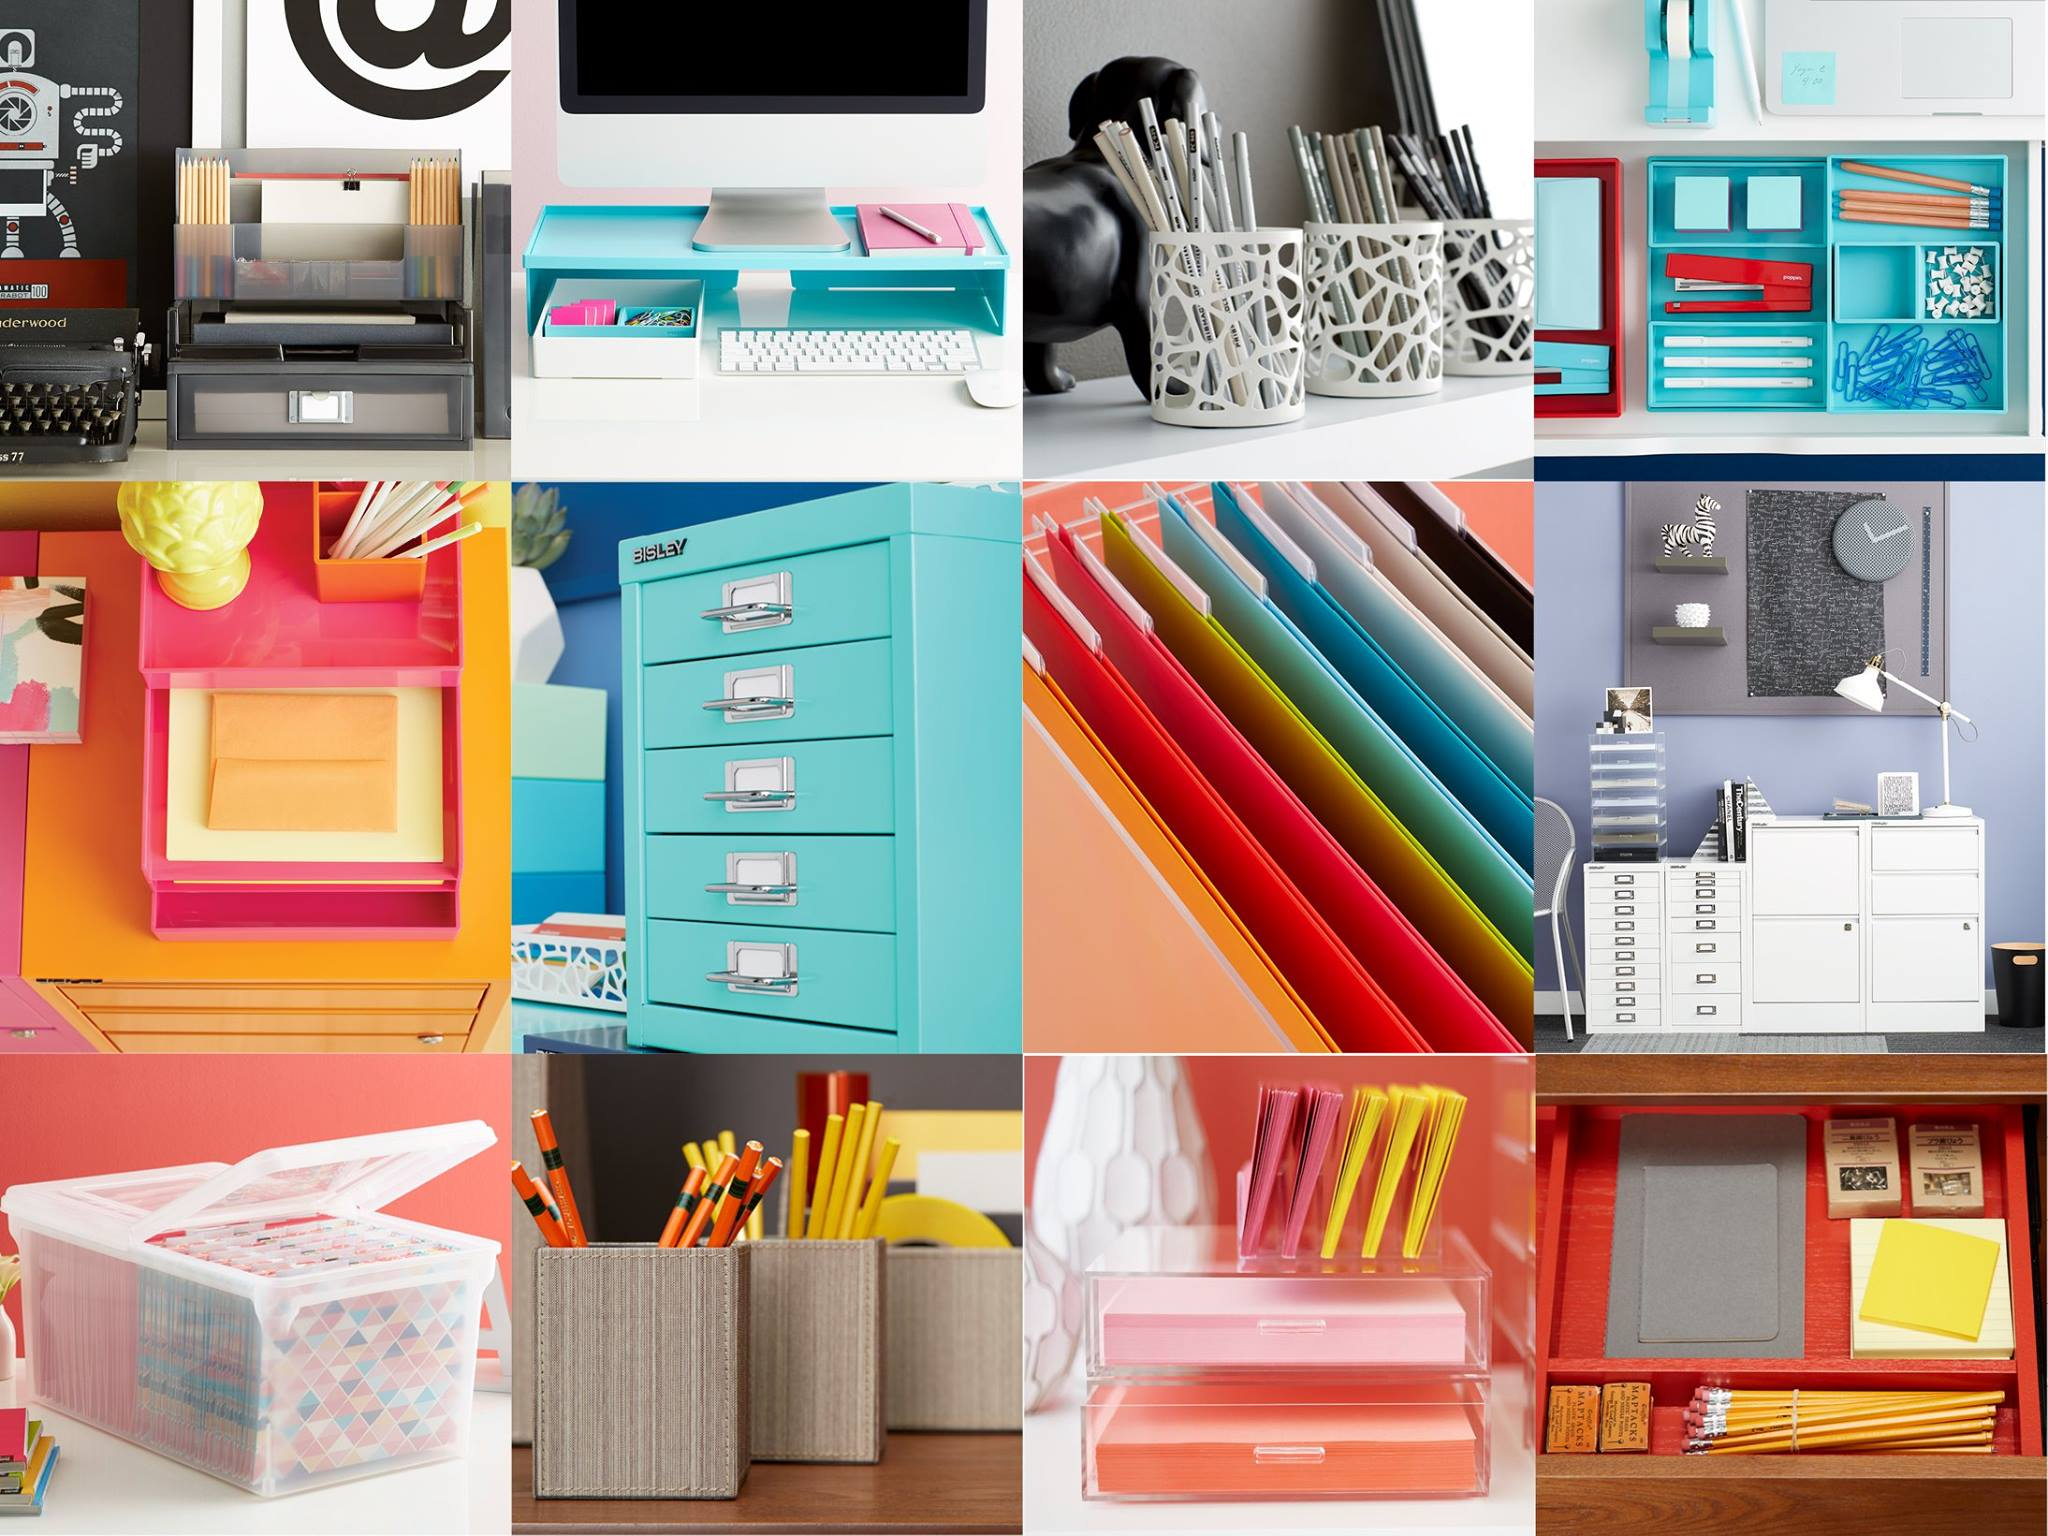 The Container Store Home Decor Stores In Nyc Newyorkertips Com